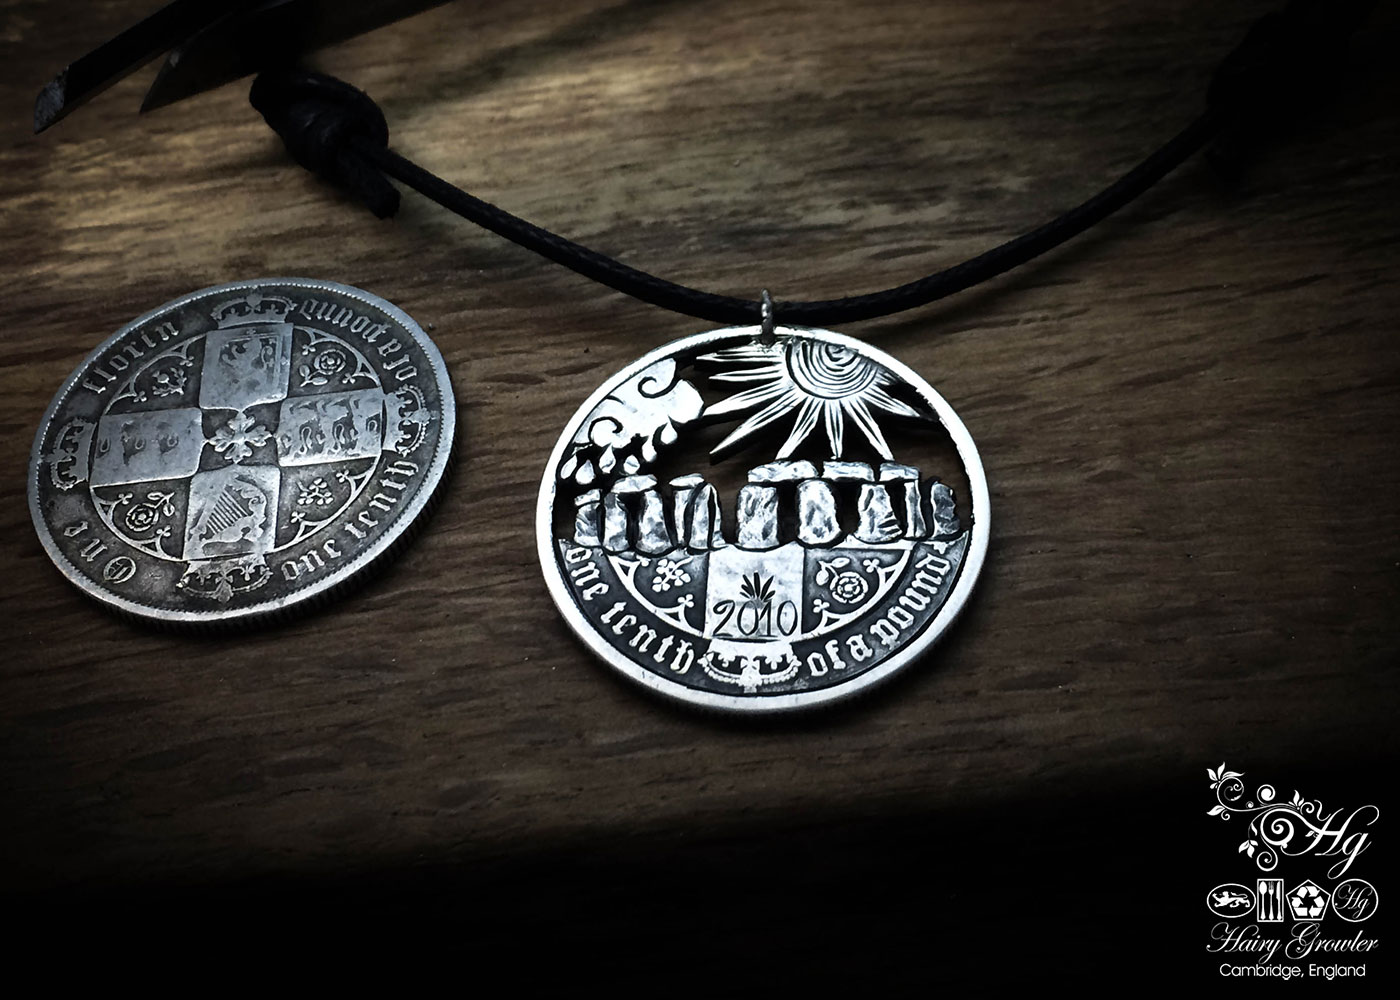 handmade and upcycled summer solstice coin necklace pendant